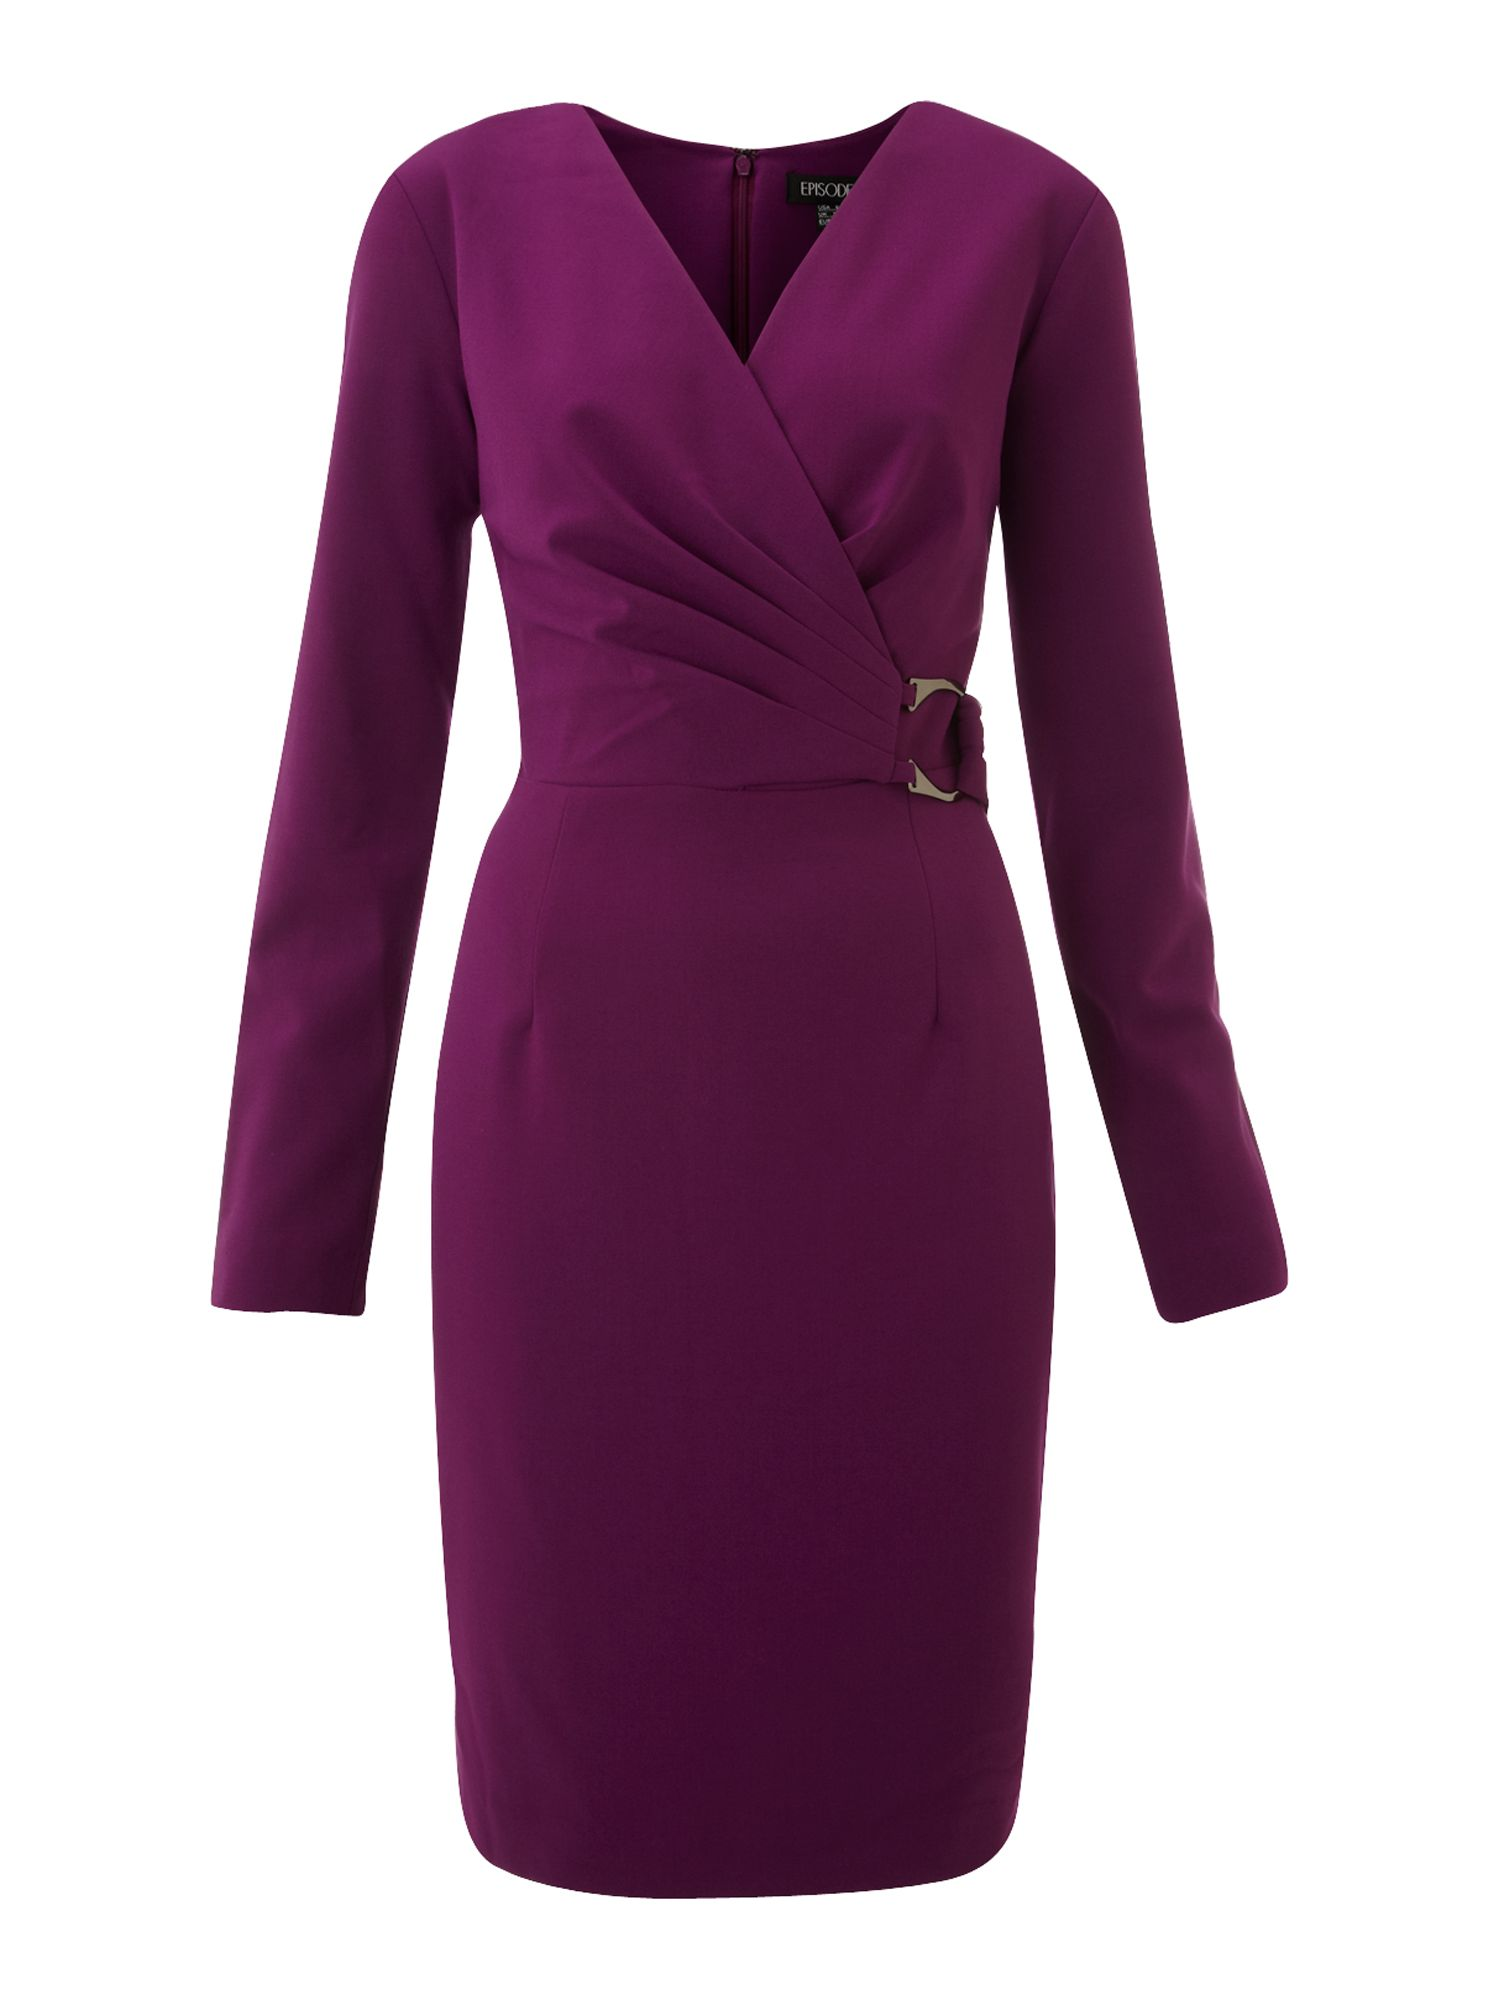 Episode Wrap Dress With Buckle In Purple Lyst